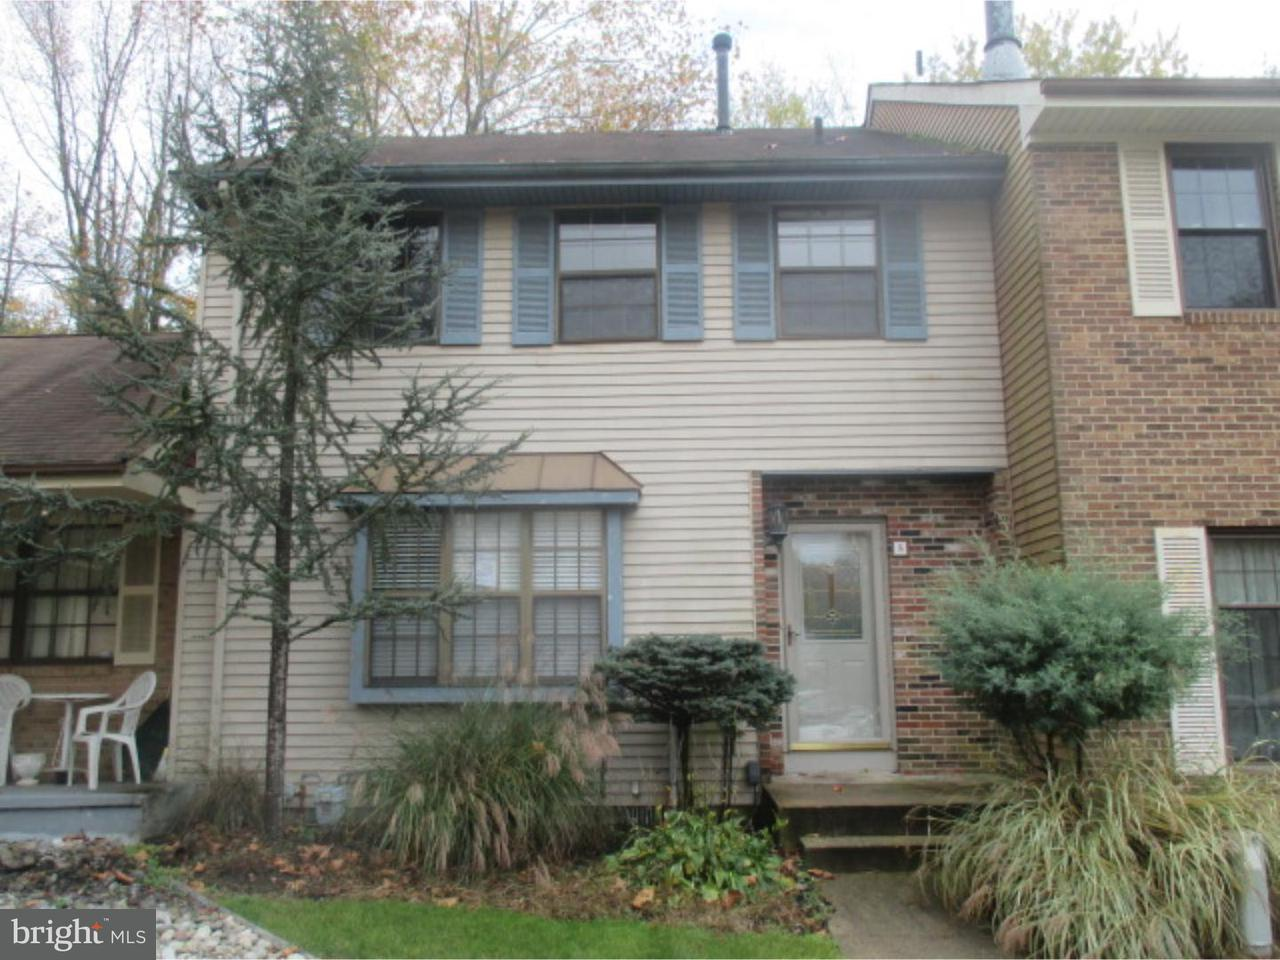 Townhouse for Sale at 5 NORWOOD Court Medford, New Jersey 08055 United States